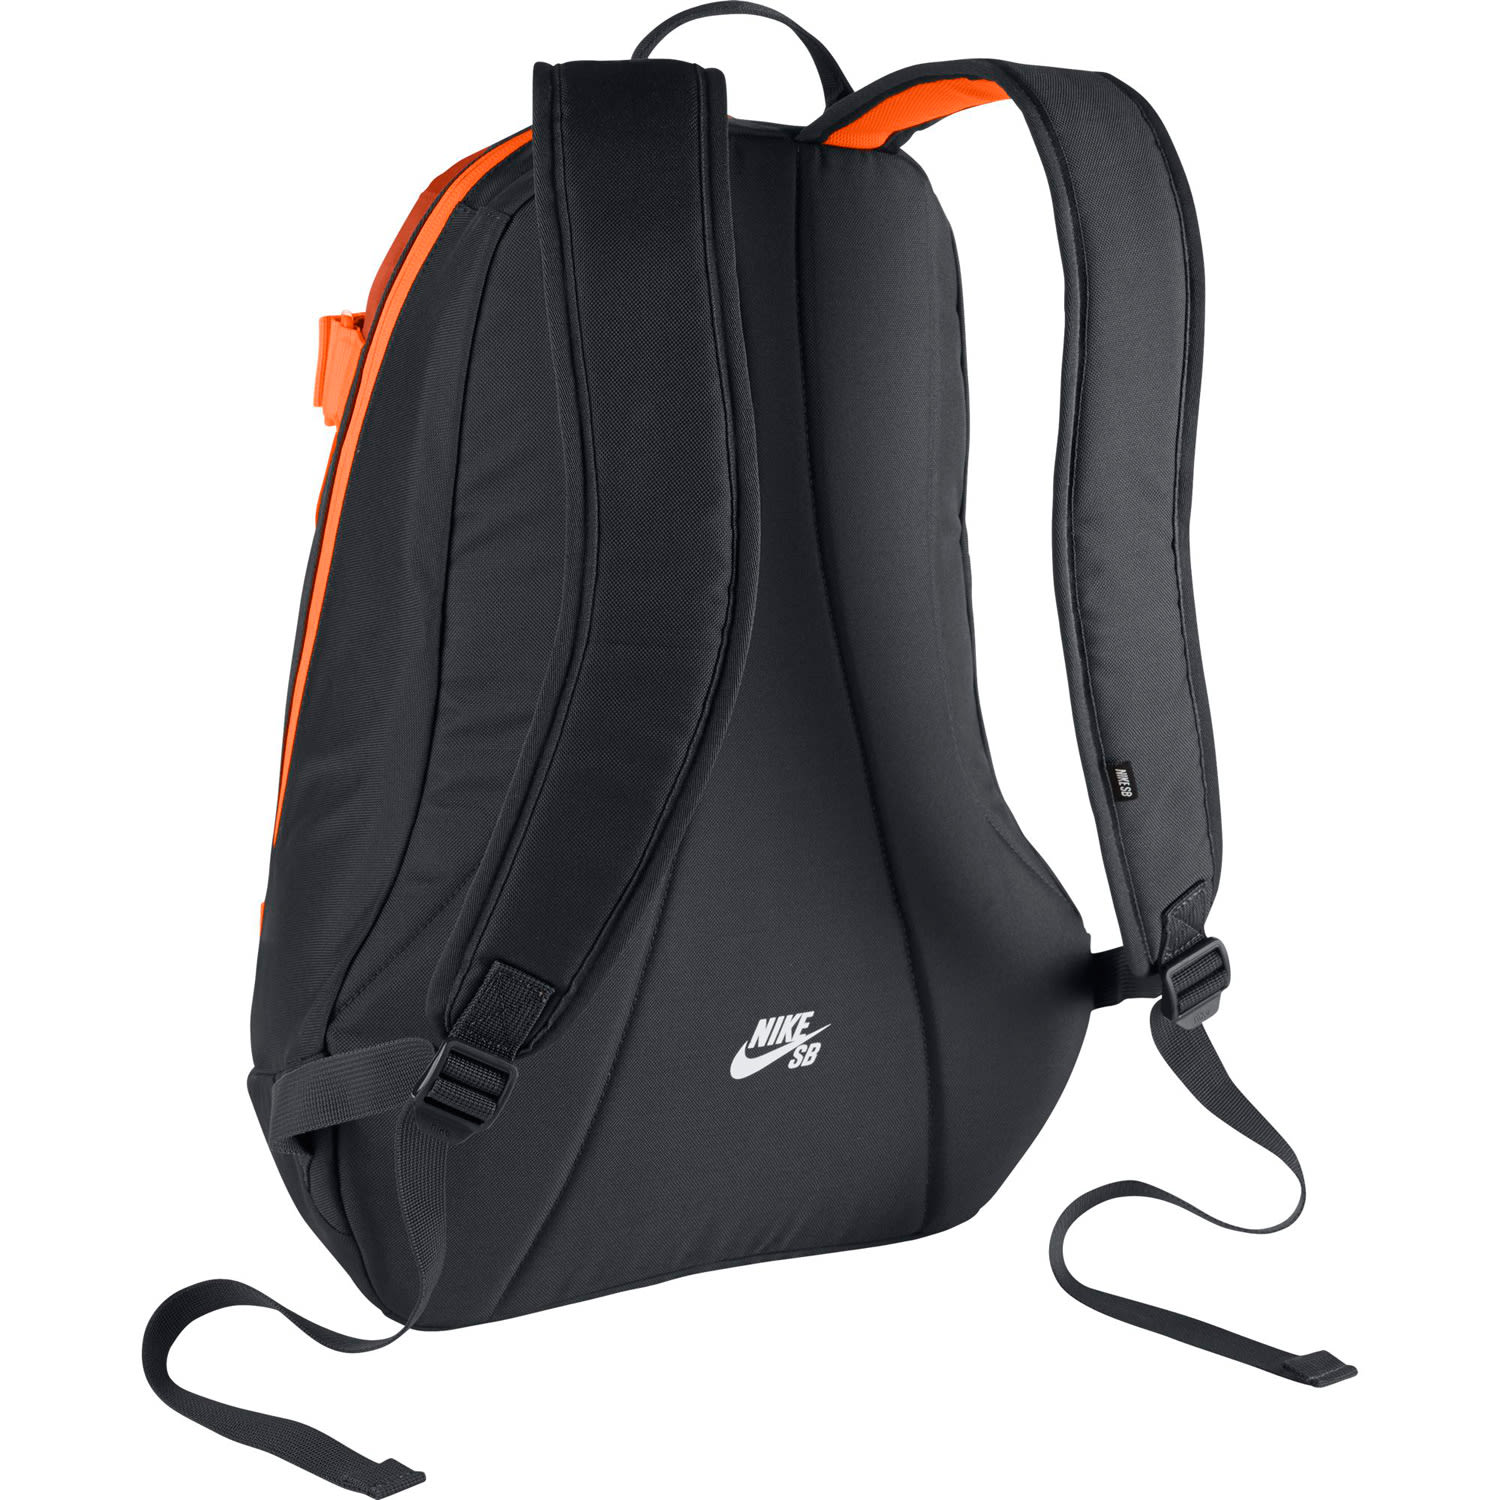 ... Nike SB Embarca (Medium) Backpack - thumbnail 2 various colors cf120  058d5  Рюкзак ... 025509e36117f